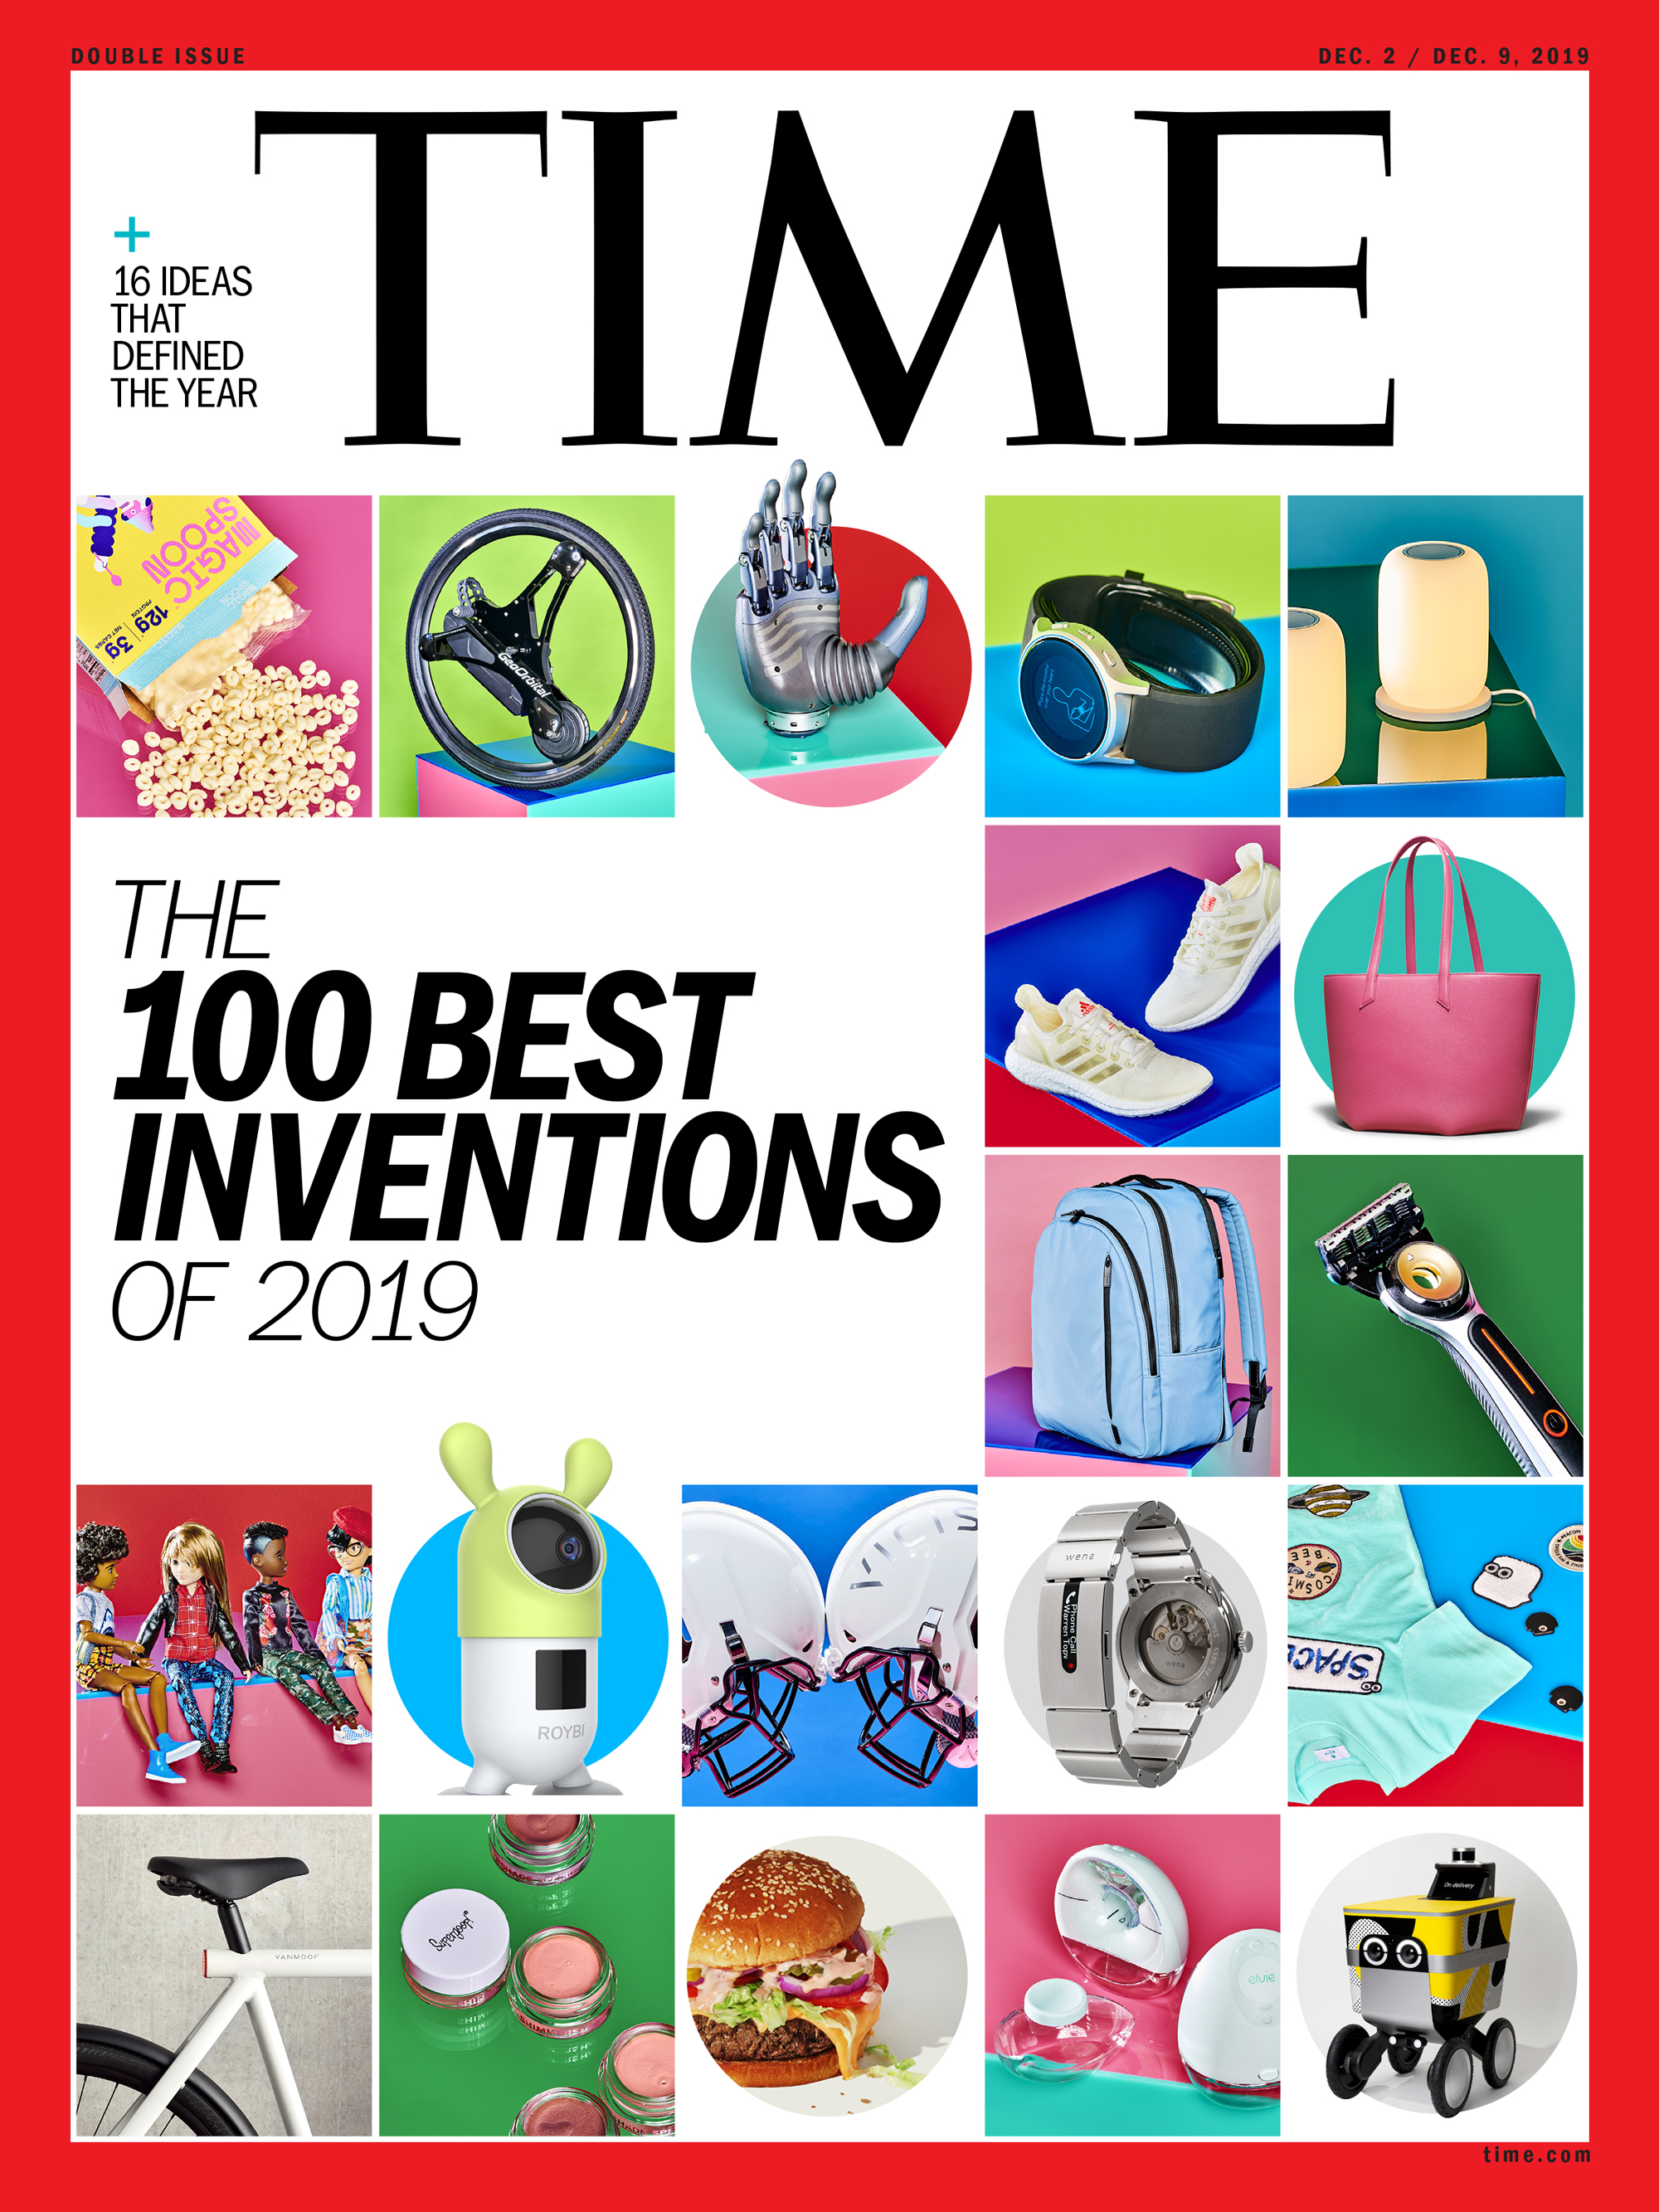 How We Chose the 100 Best Inventions of 2019